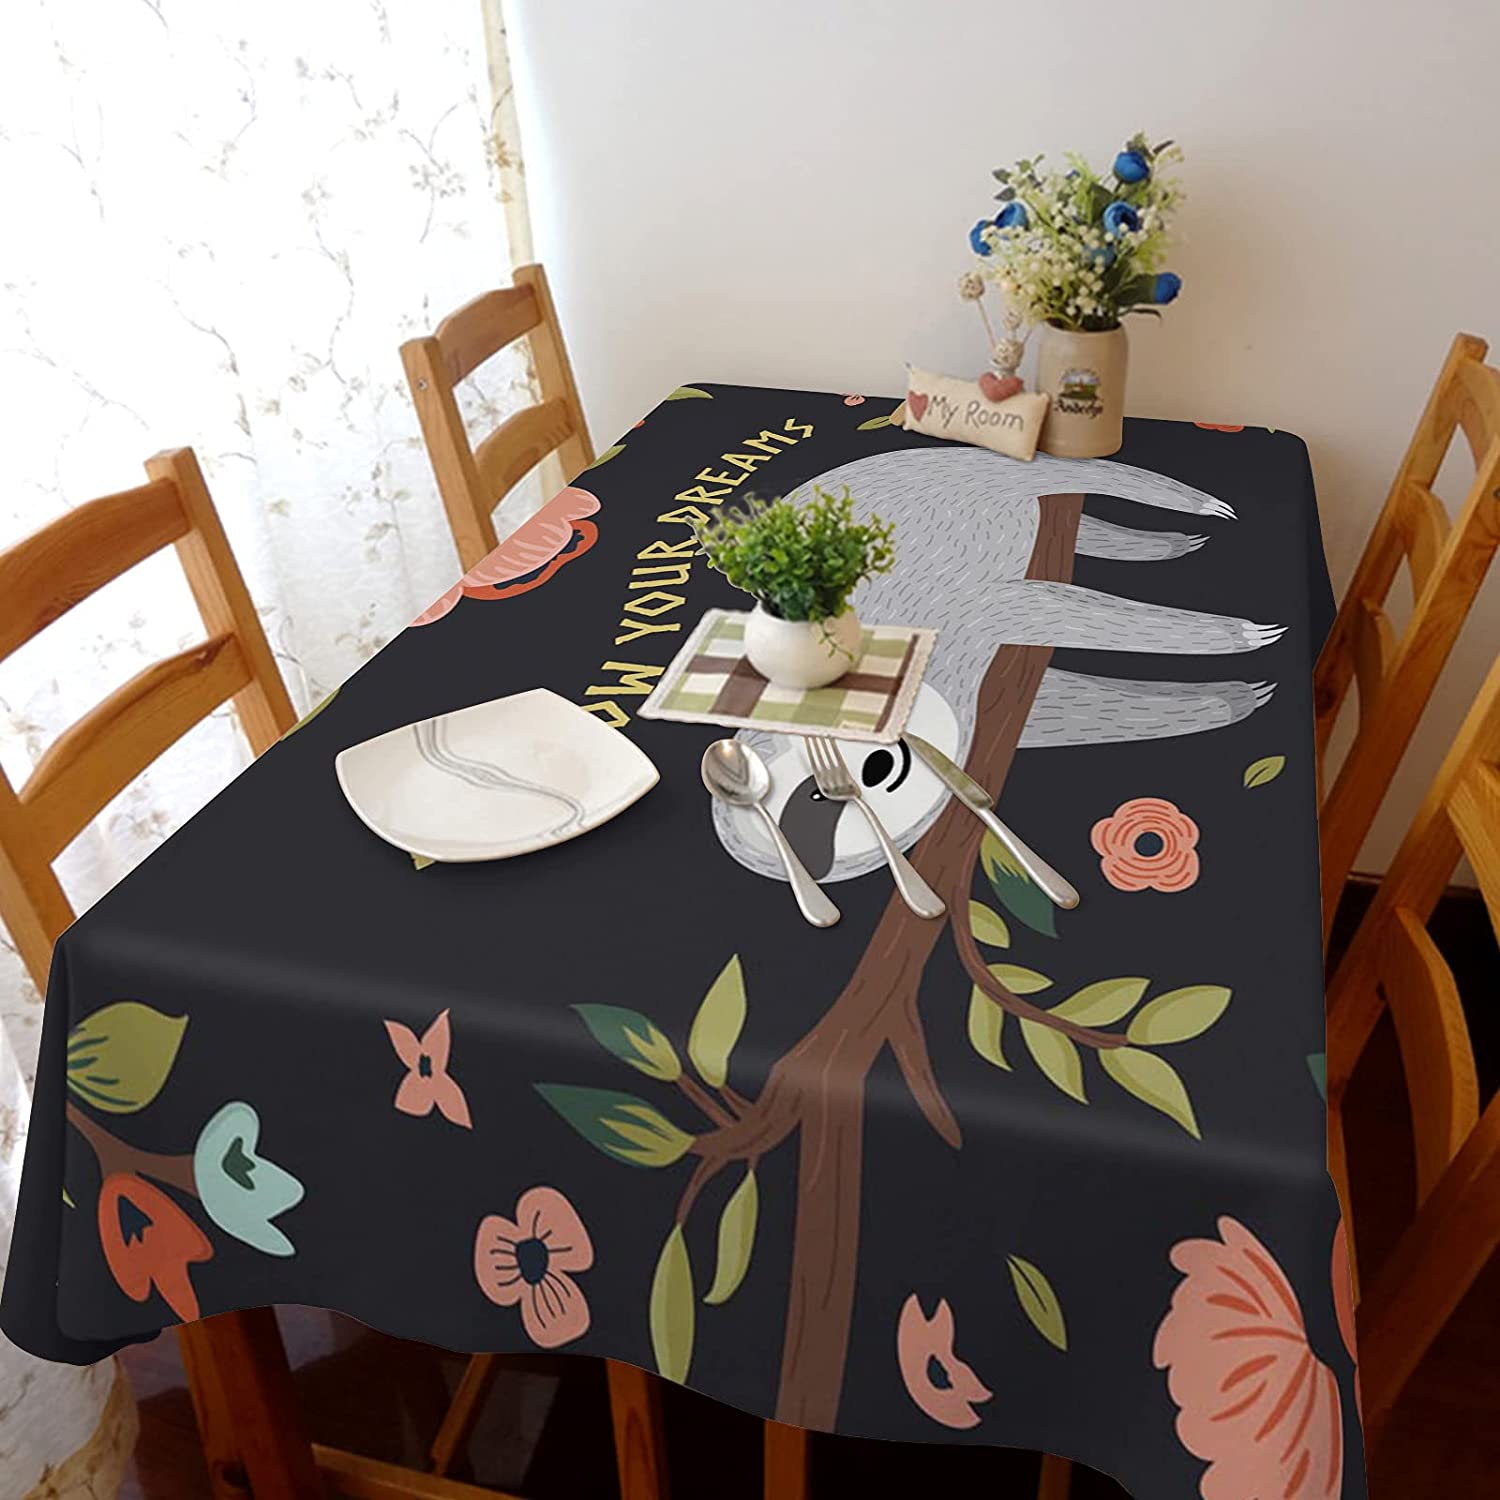 Bombing free shipping Arts Language Tablecloth for Seattle Mall Rectangle Table Fo Quote Cute Sloth